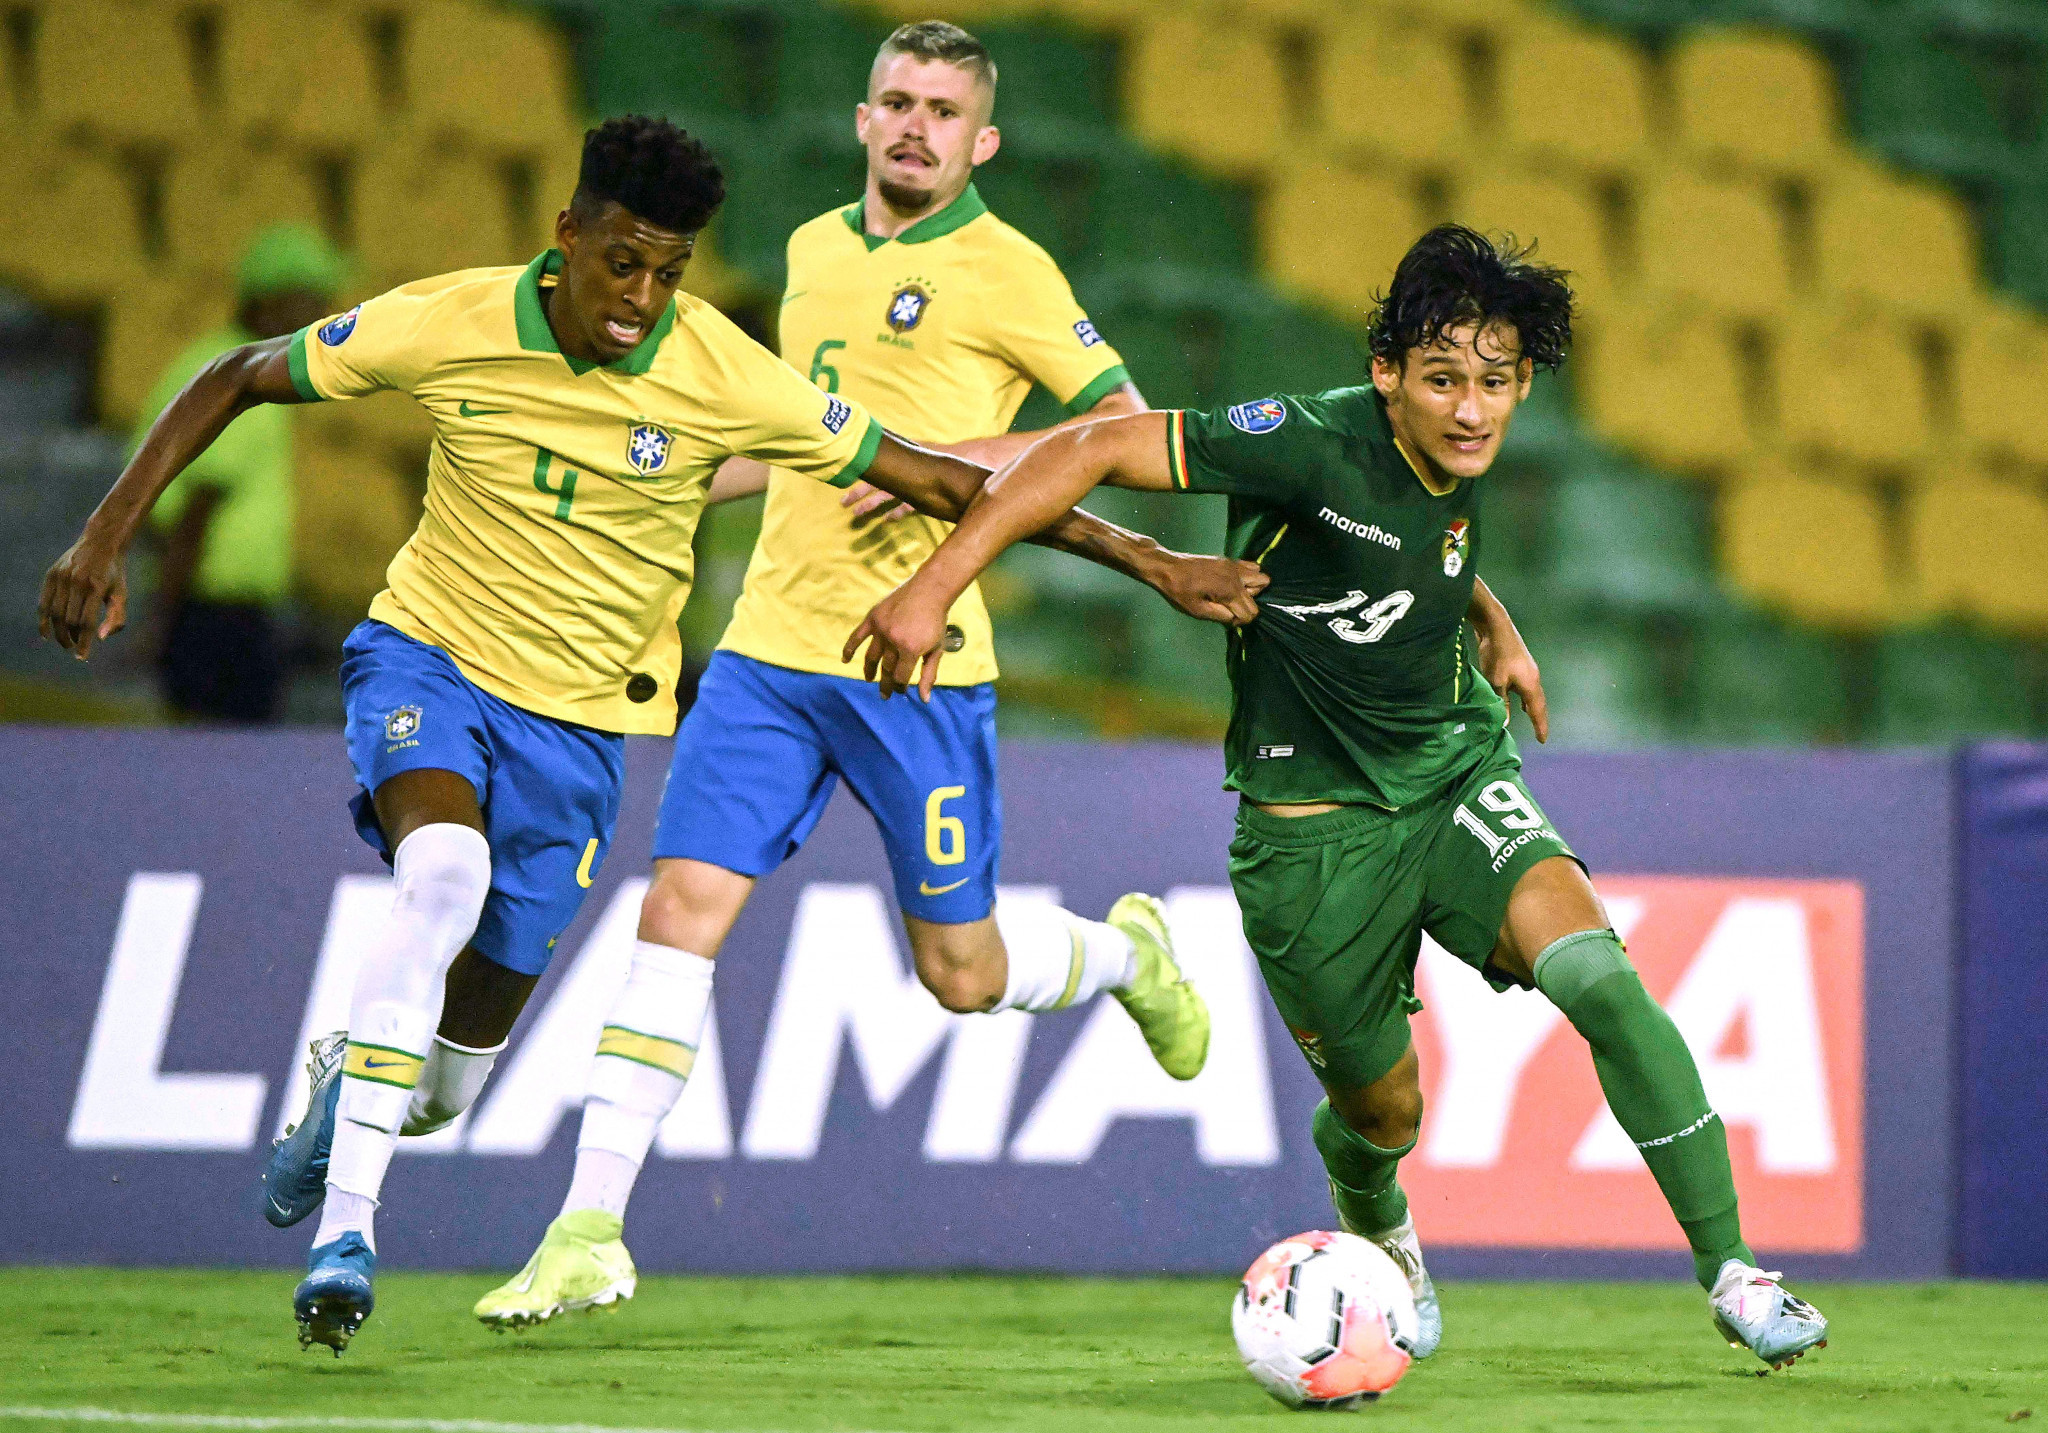 Brazil reach next round of CONMEBOL Pre-Olympic Tournament after eight-goal thriller